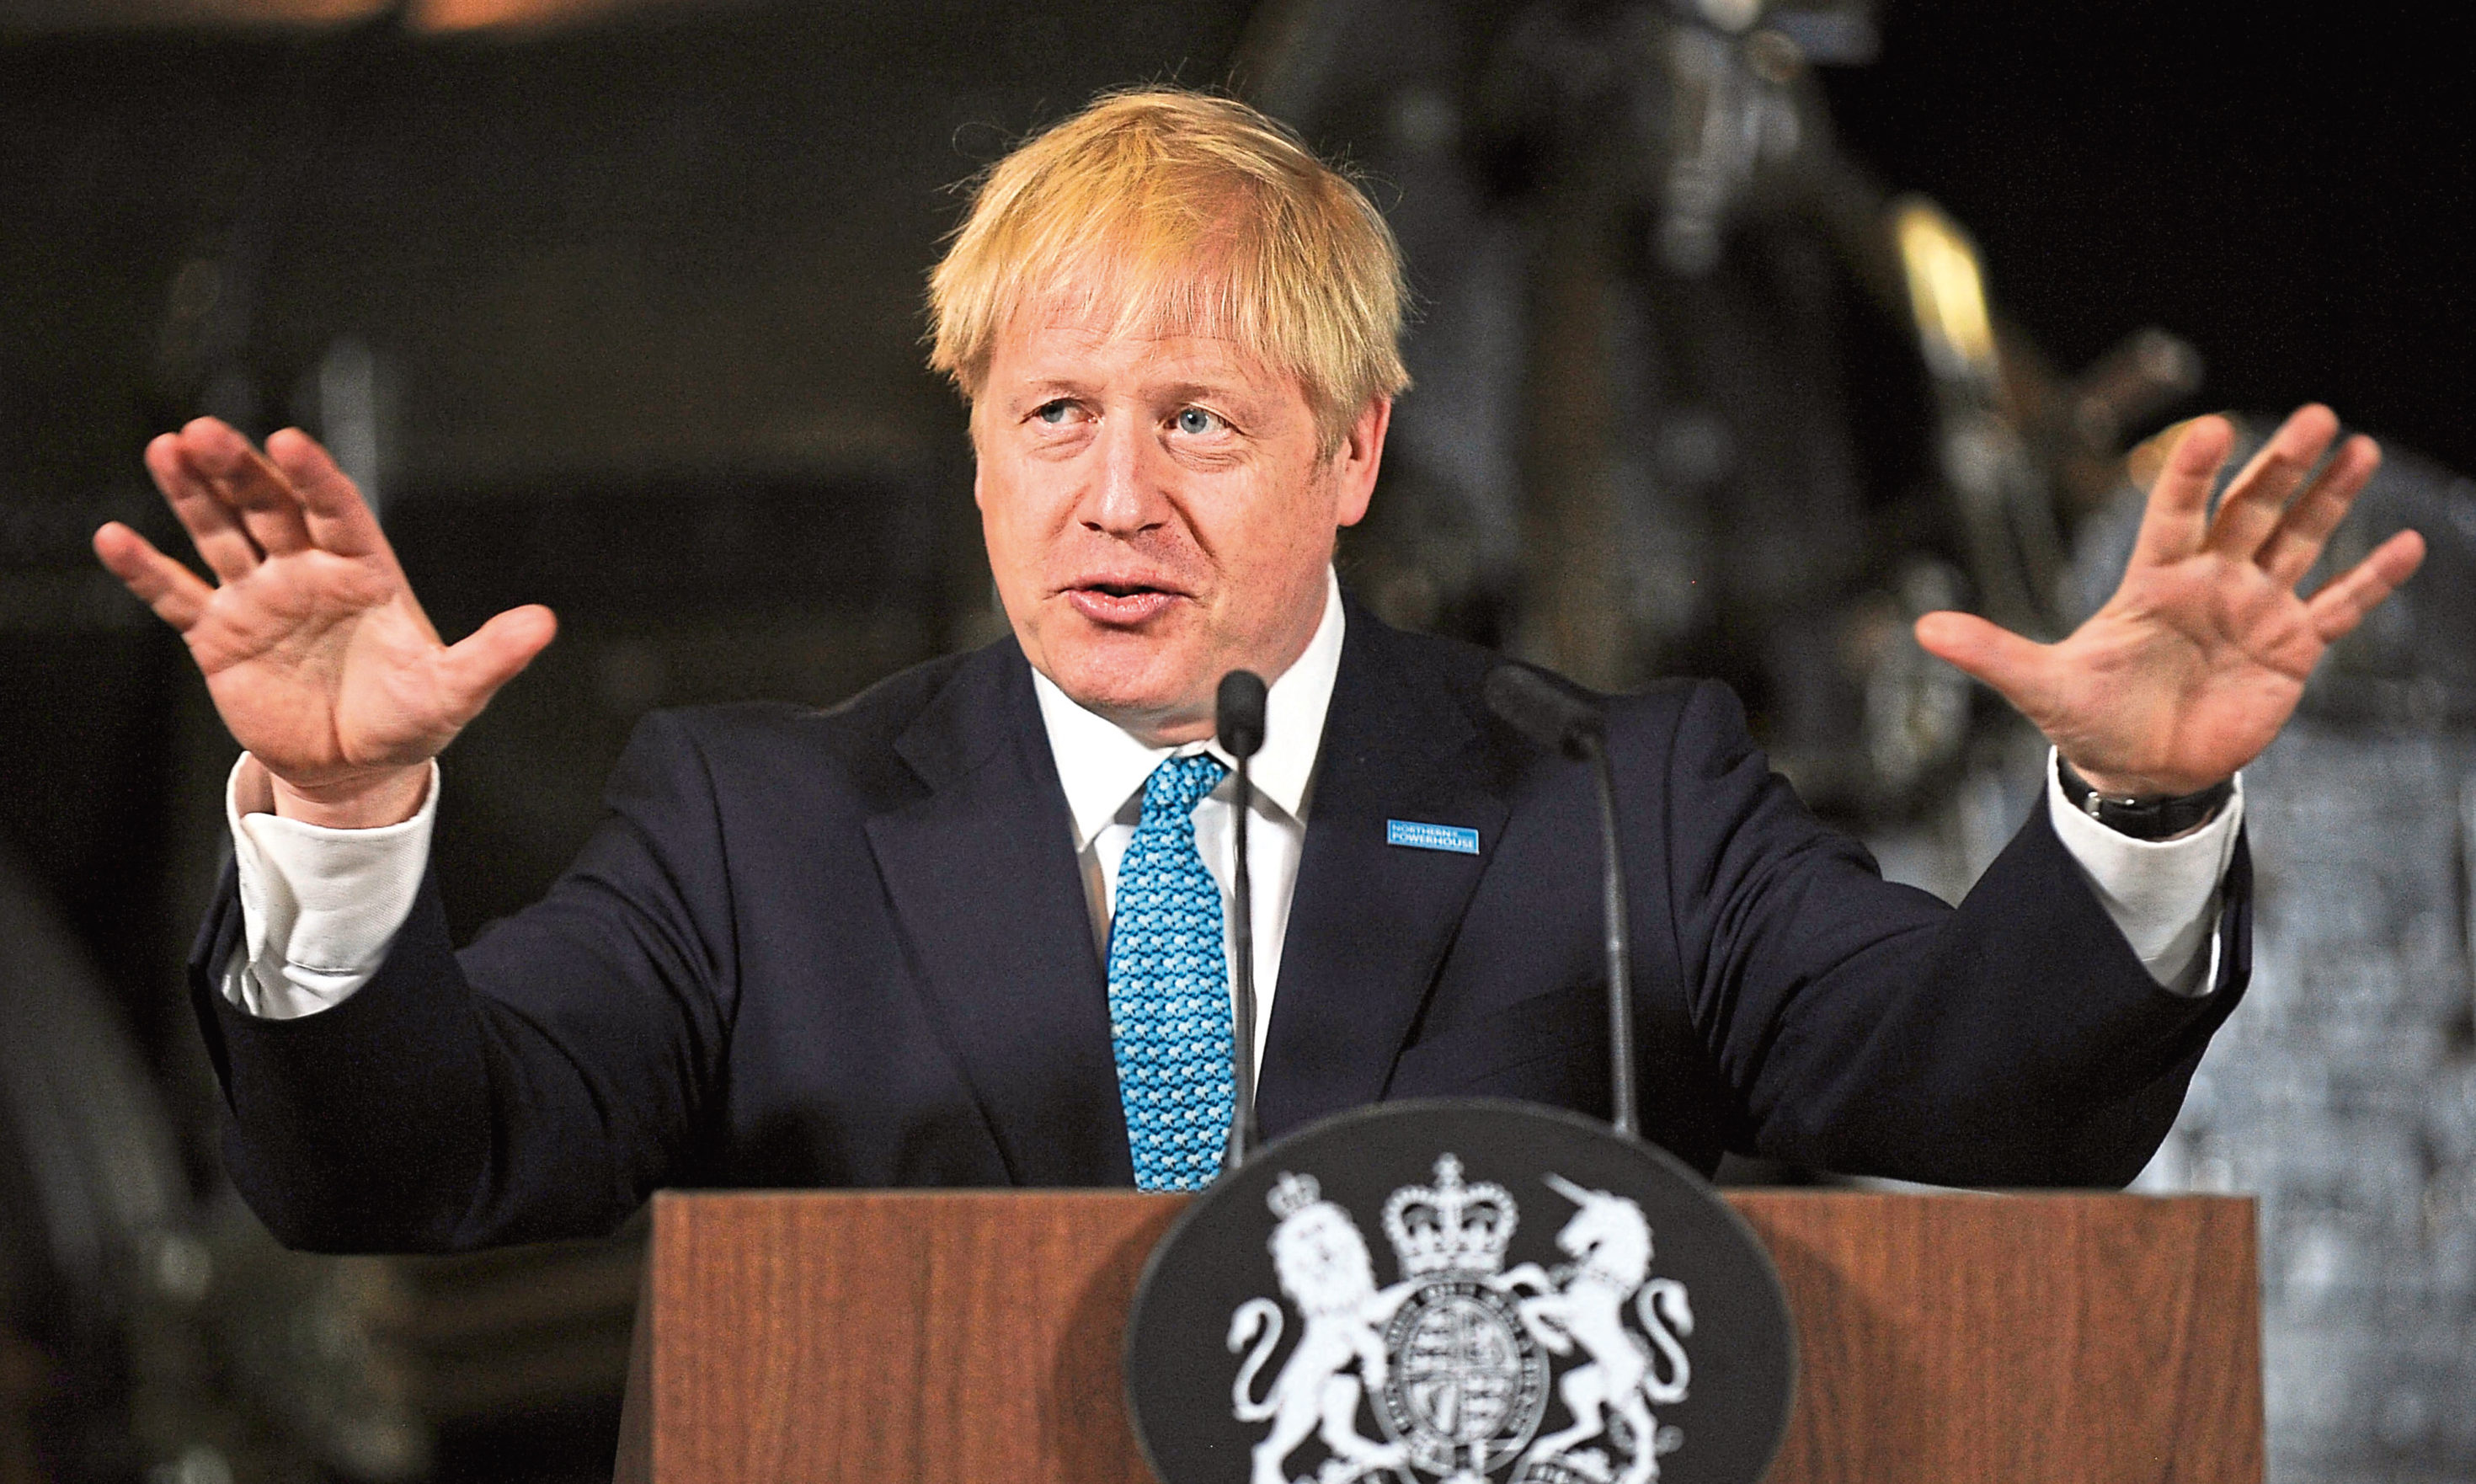 Prime Minister Boris Johnson giving a speech on domestic priorities at the Science and Industry Museum in Manchester.